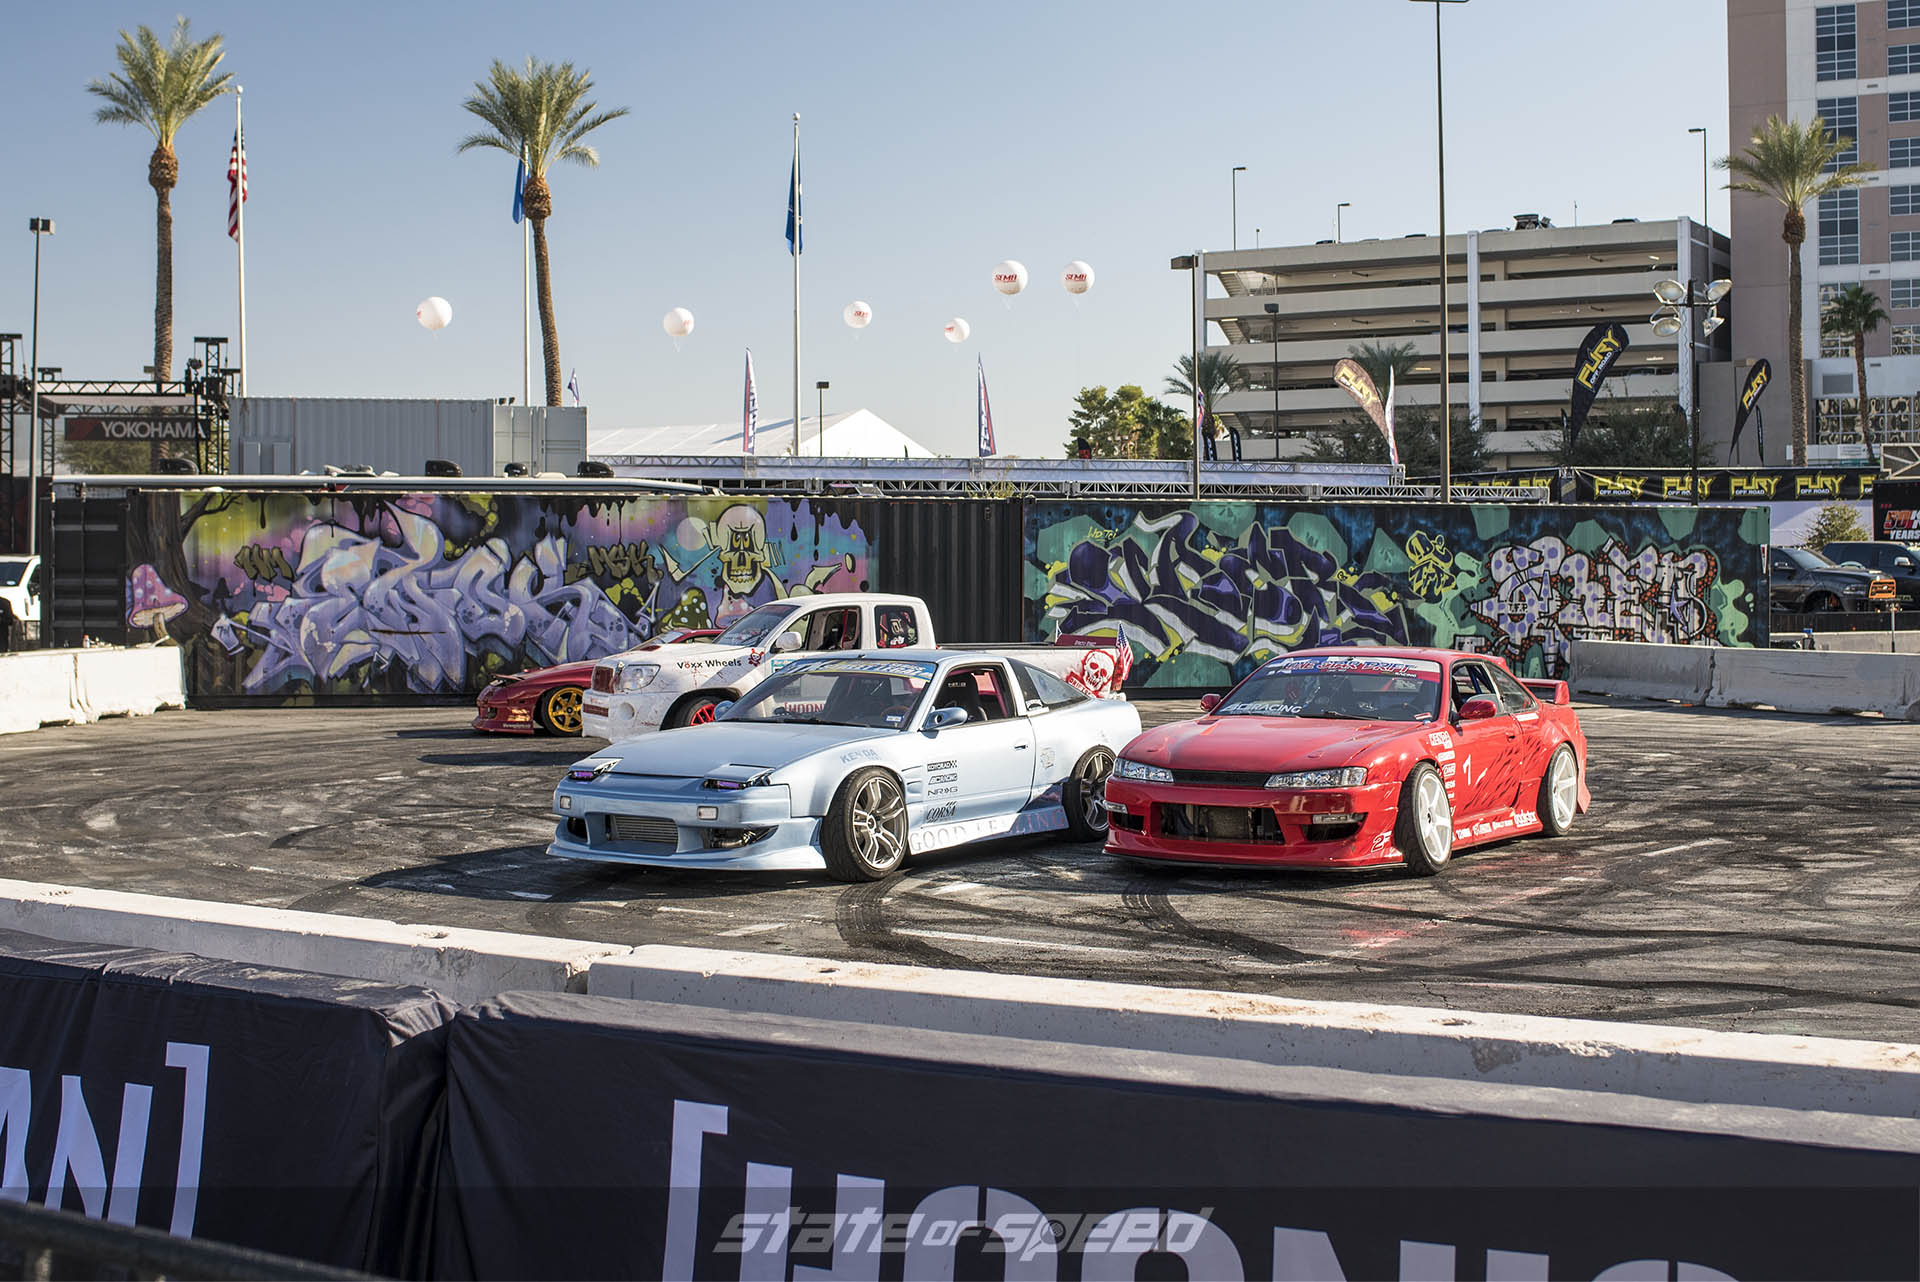 Drift cars at SEMA including Fielding Shredder of Netflix's Hyperdrive